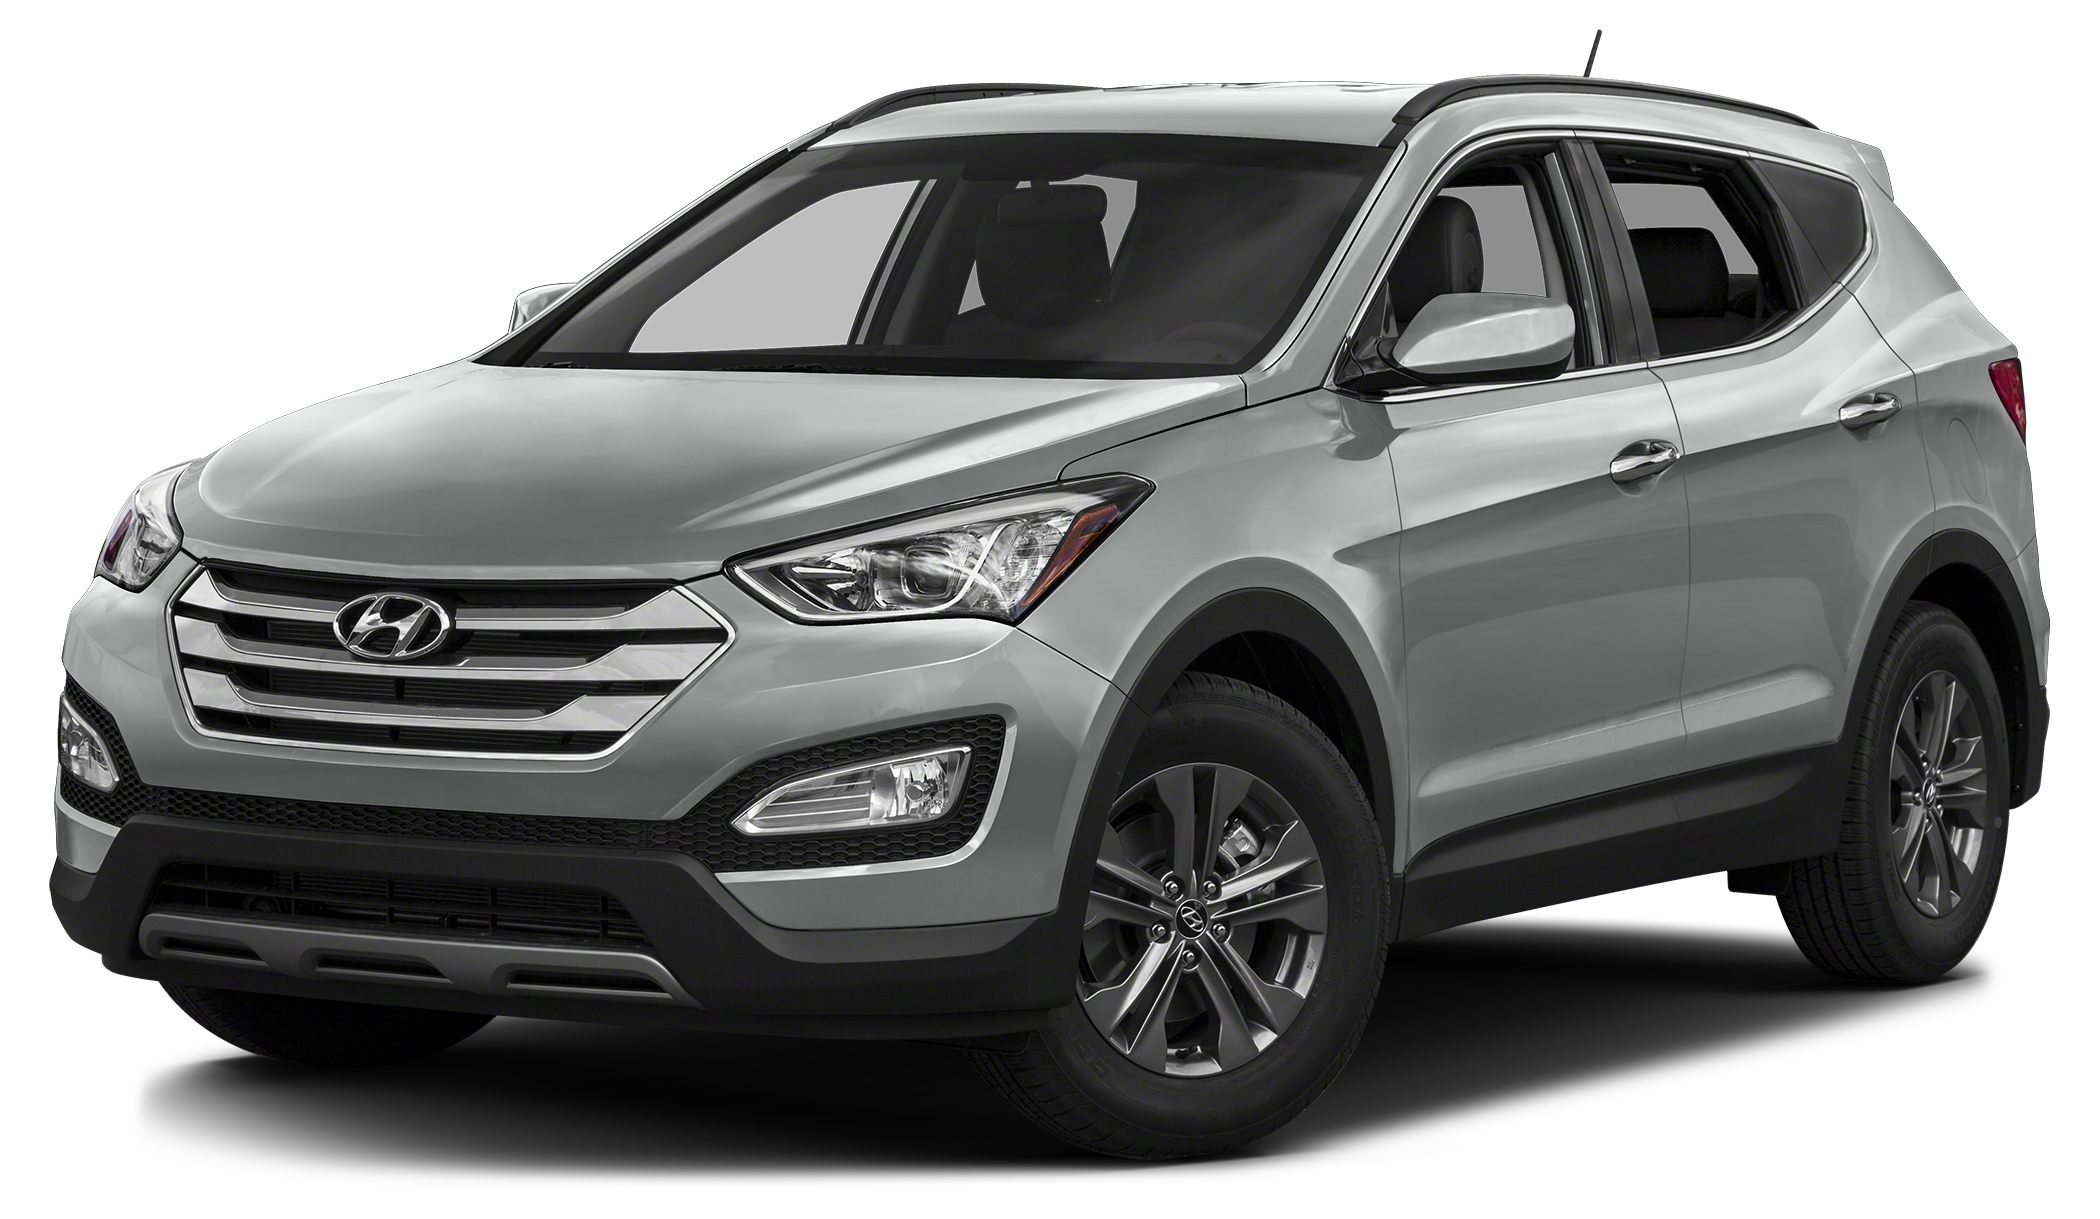 2014 Hyundai Santa Fe Sport 24 Proudly serving manatee county for over 60 years offering Cars Tr